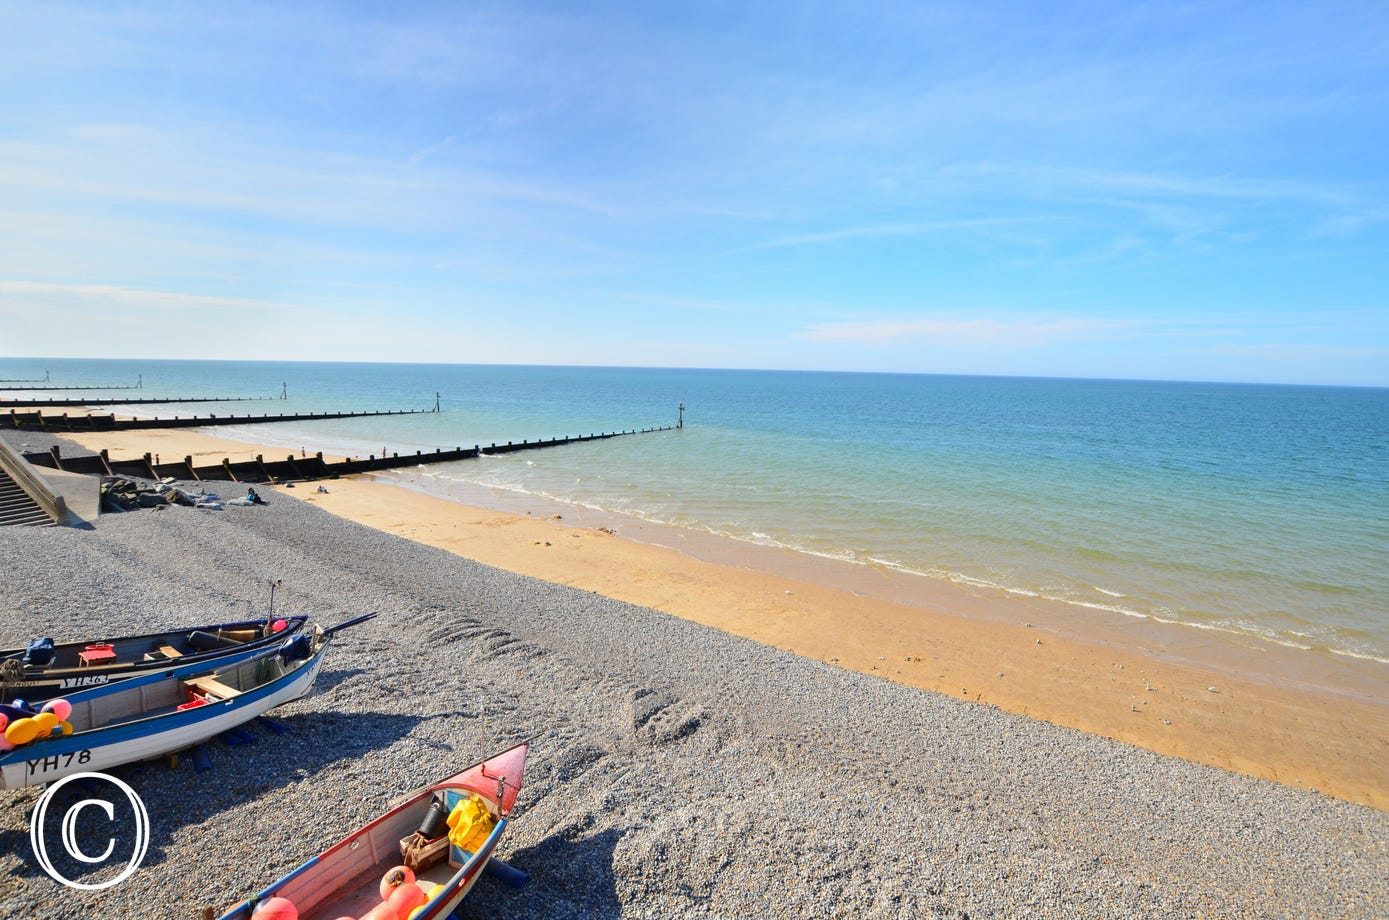 Sheringham Beach located 4 miles away